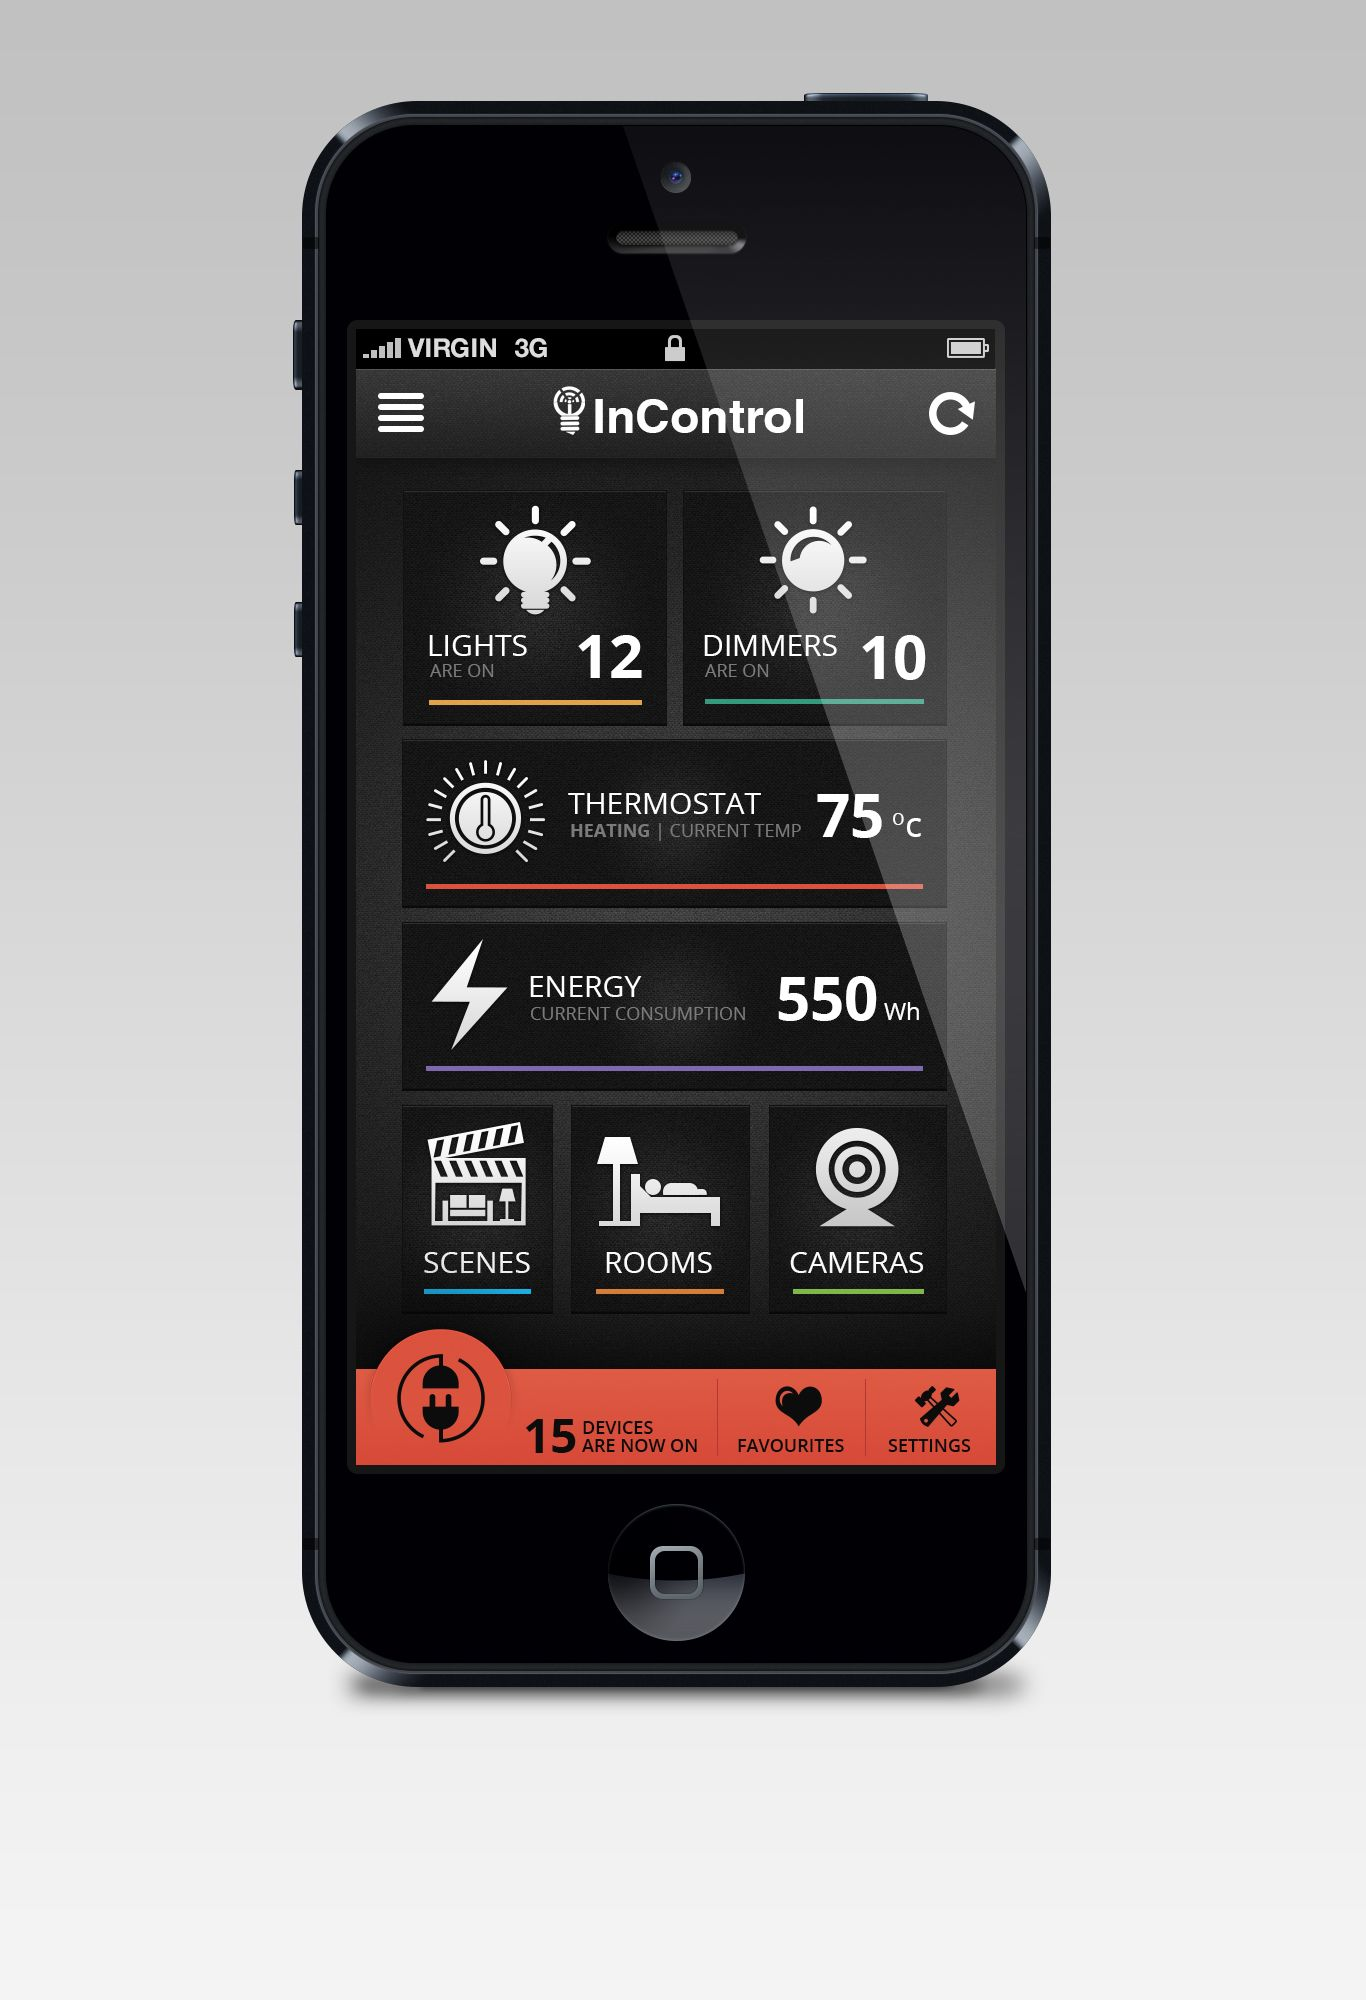 Mobile App For InControl Home Automation By IngeniousThoughts #POTD99  07.03.2013 #lights #home